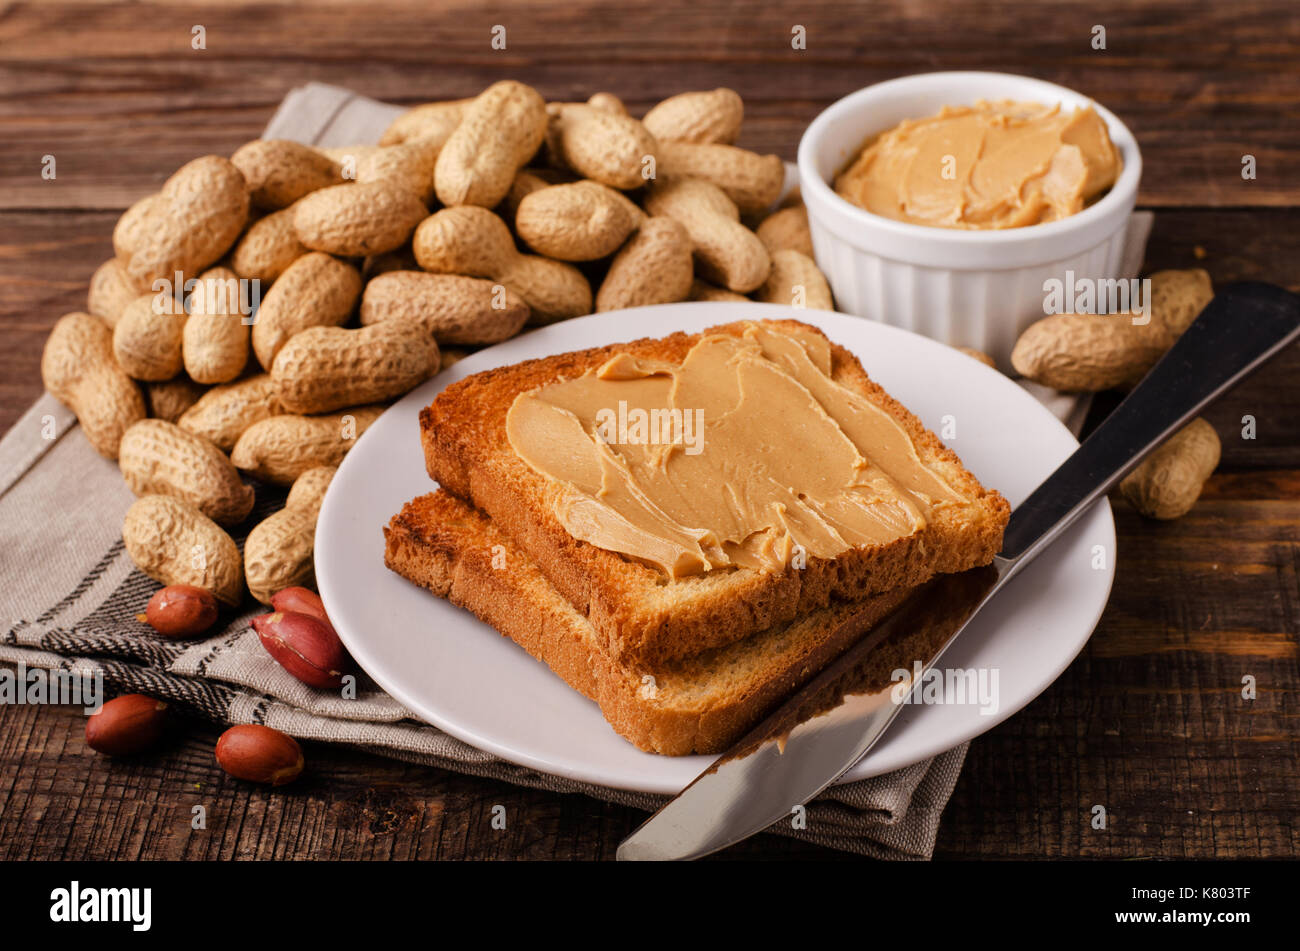 Peanut butter sandwich on plate with inshell peanuts, breakfast on the wooden background - Stock Image